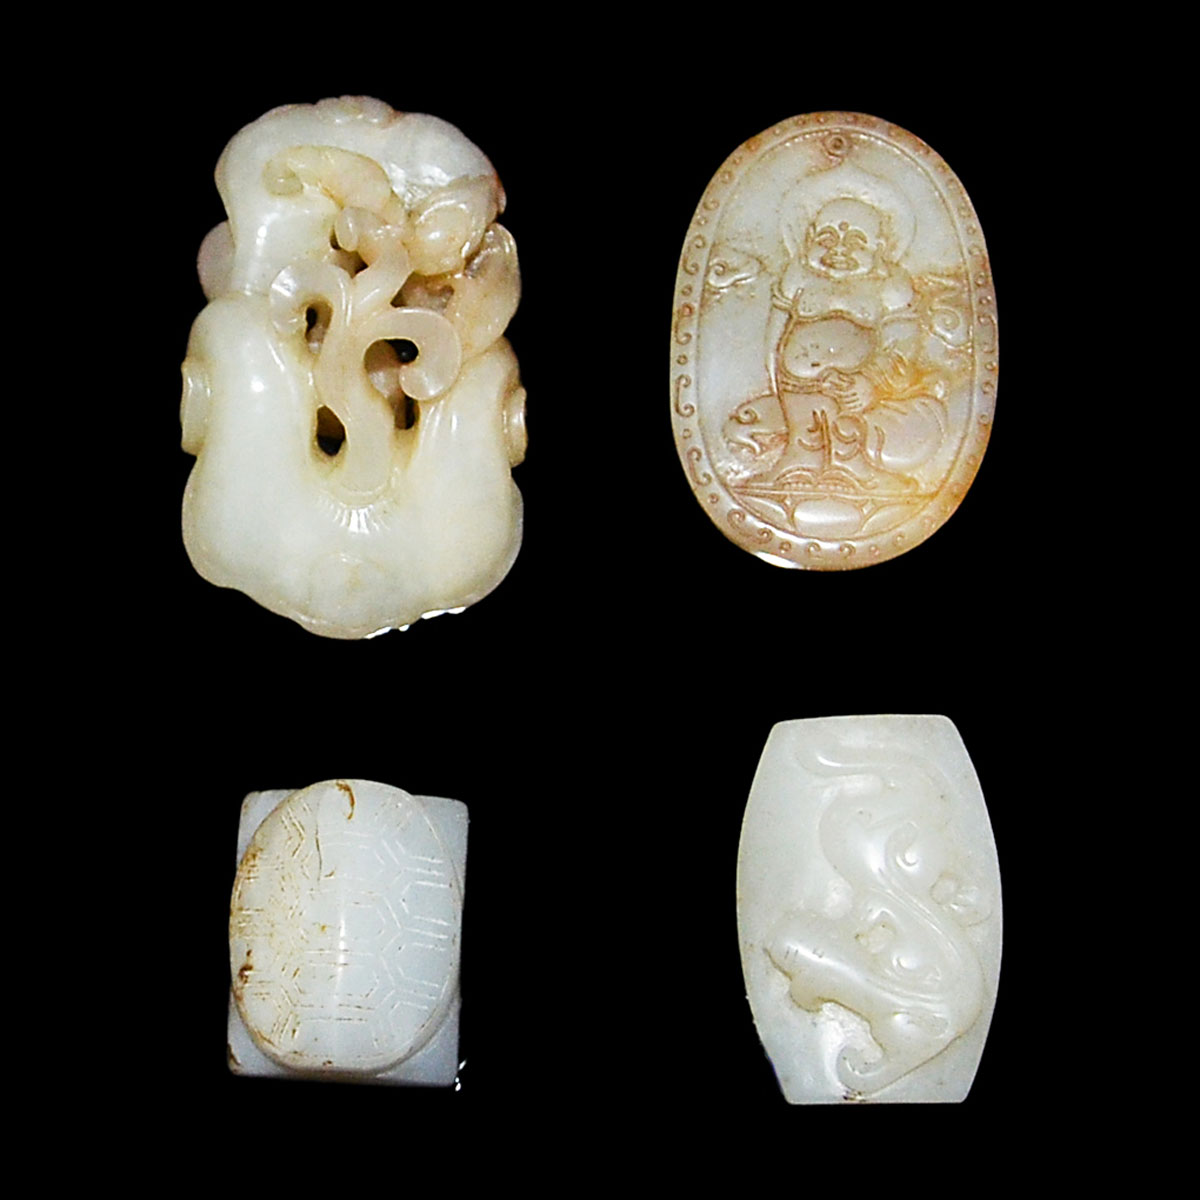 Lot 12 - 玉雕把玩項飾一組四件 A Group of Four Jade Pebble and Pendant Carvings. Length: 1⅛ - 2¼ in (2.9 - 5.7 cm)